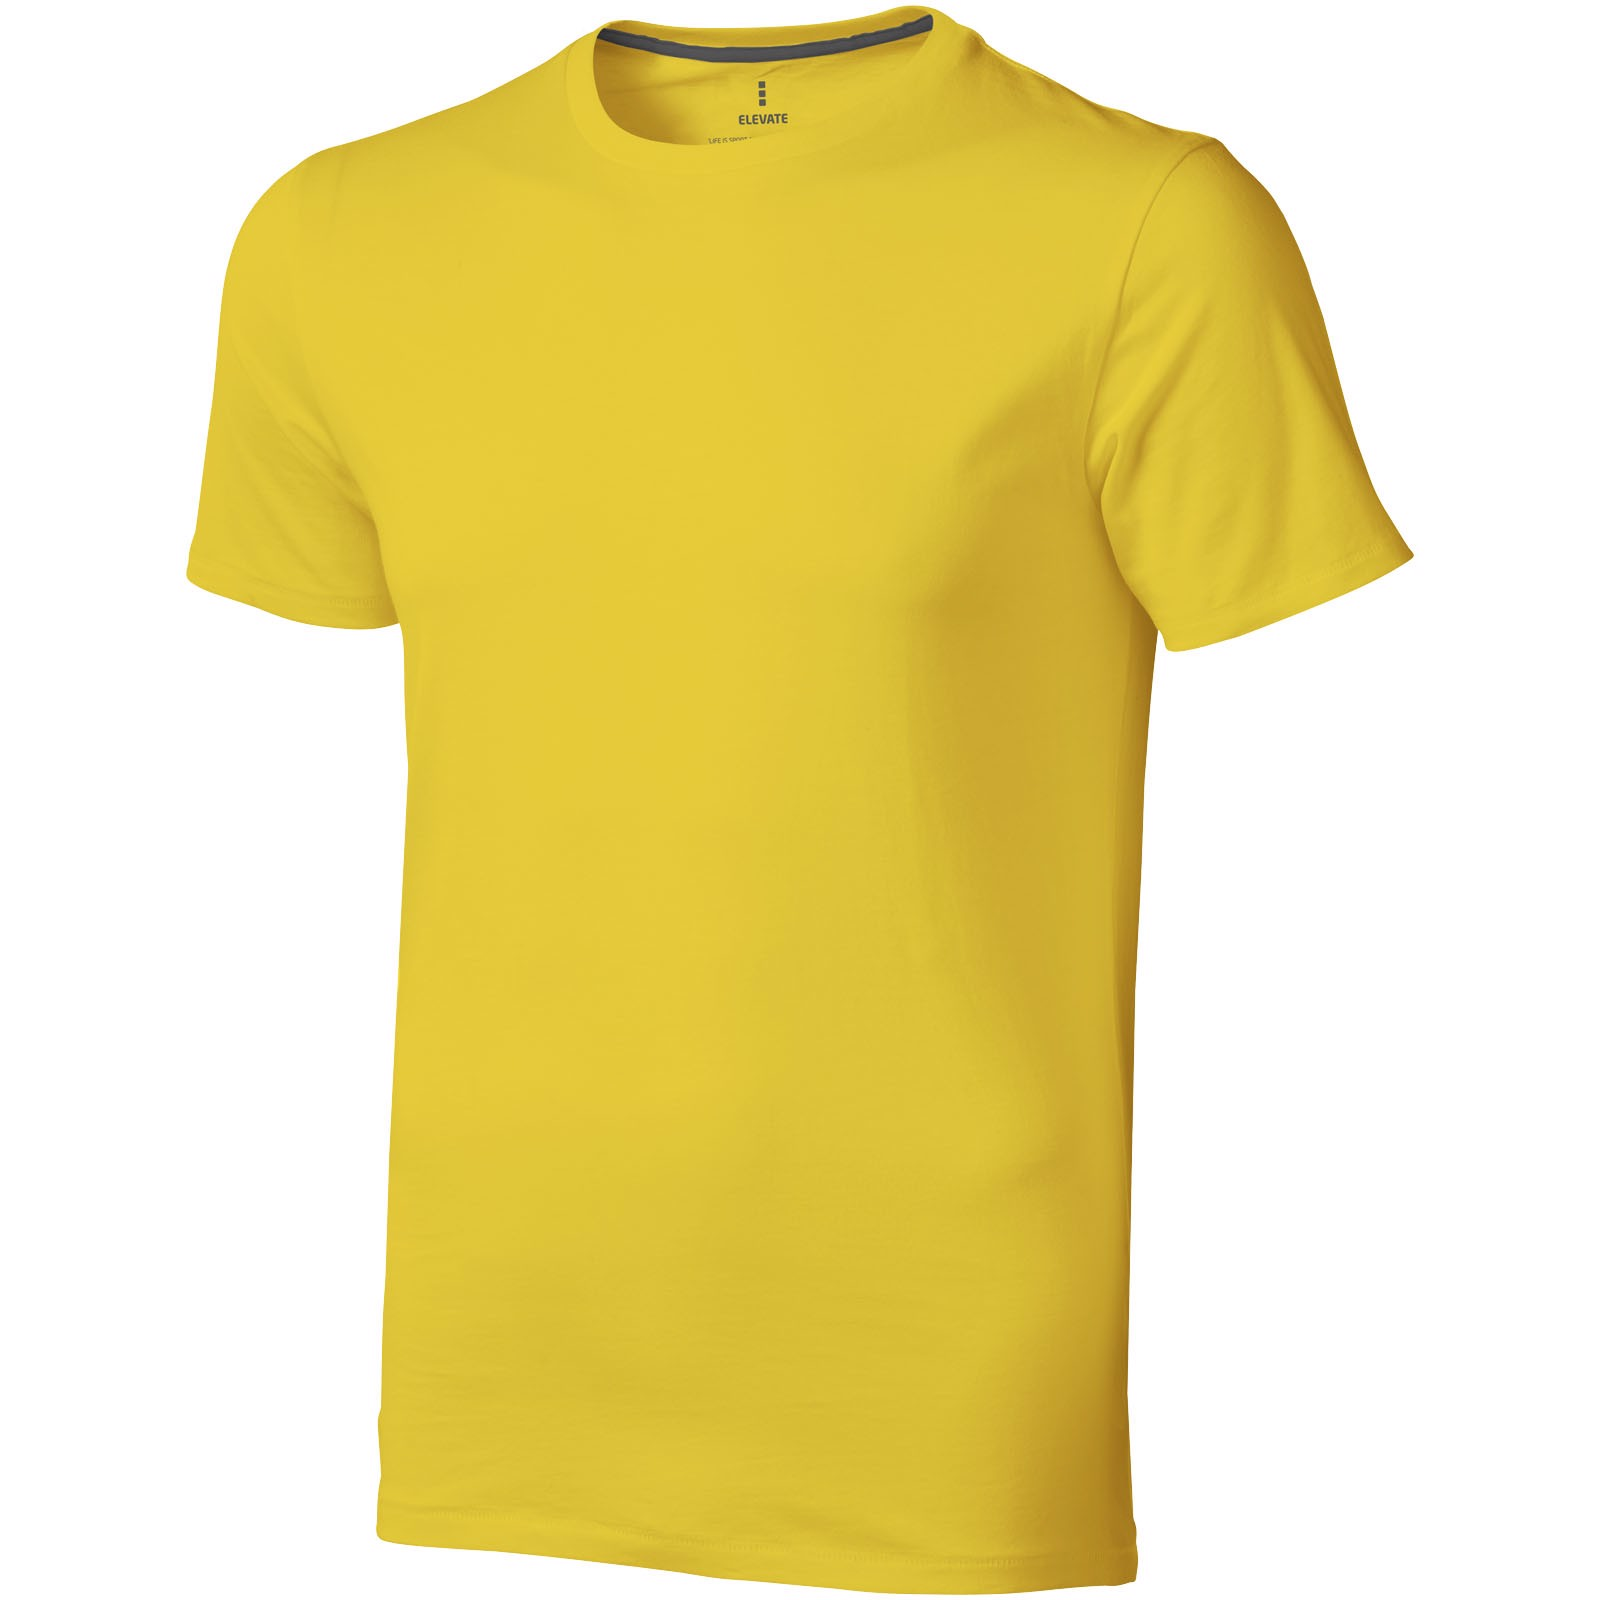 Nanaimo short sleeve men's t-shirt - Yellow / XS